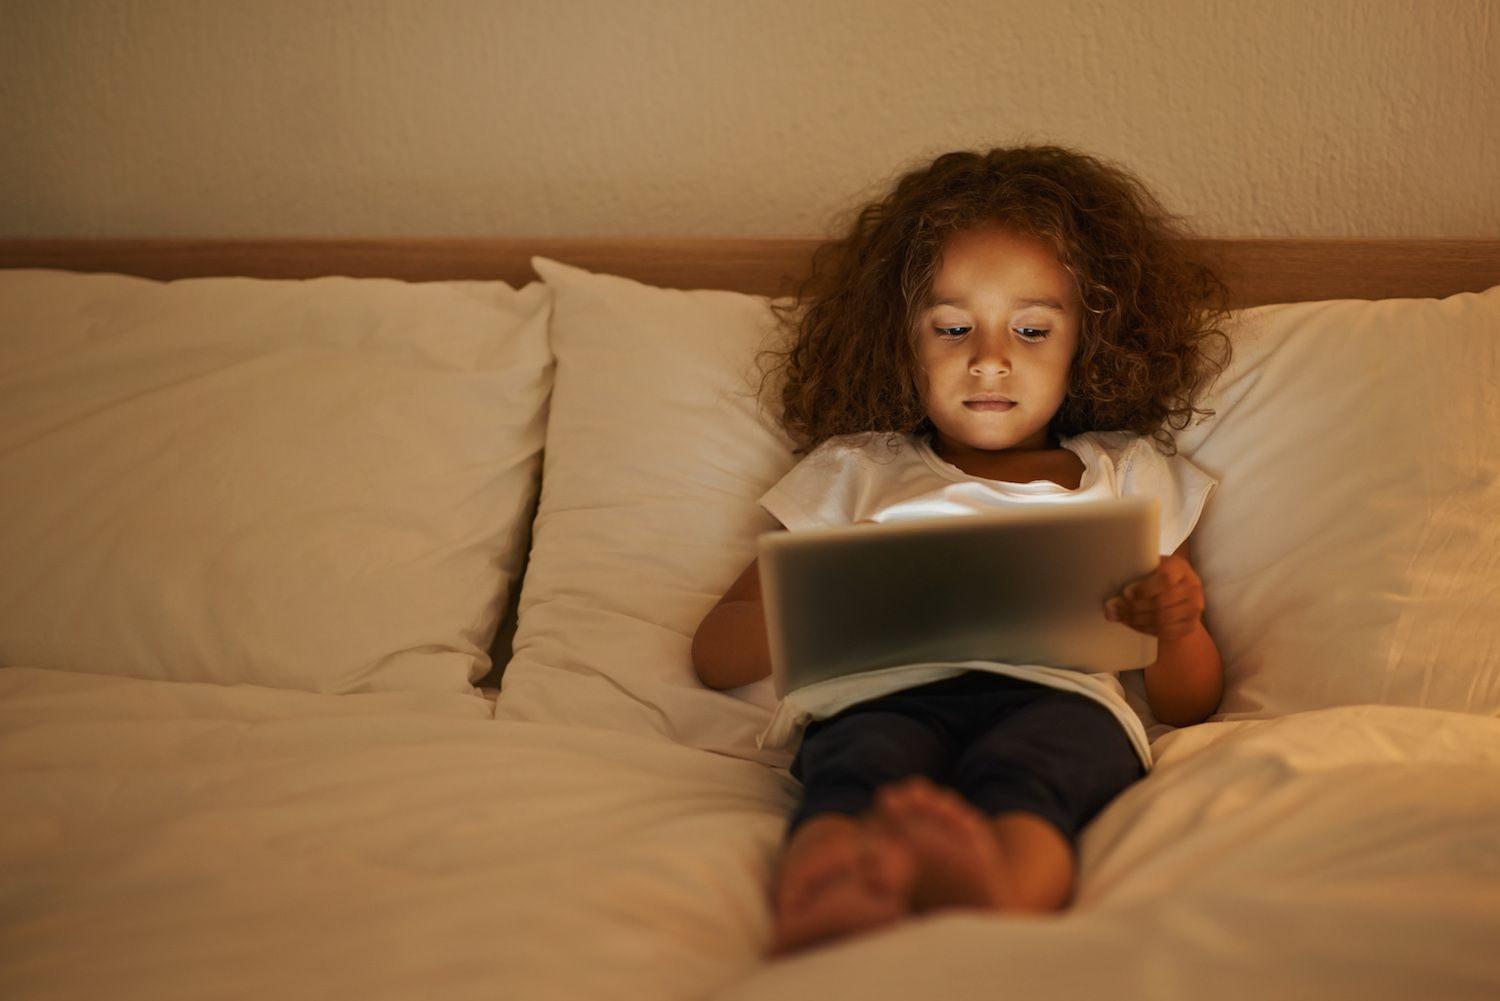 Girl reading on a tablet while in bed